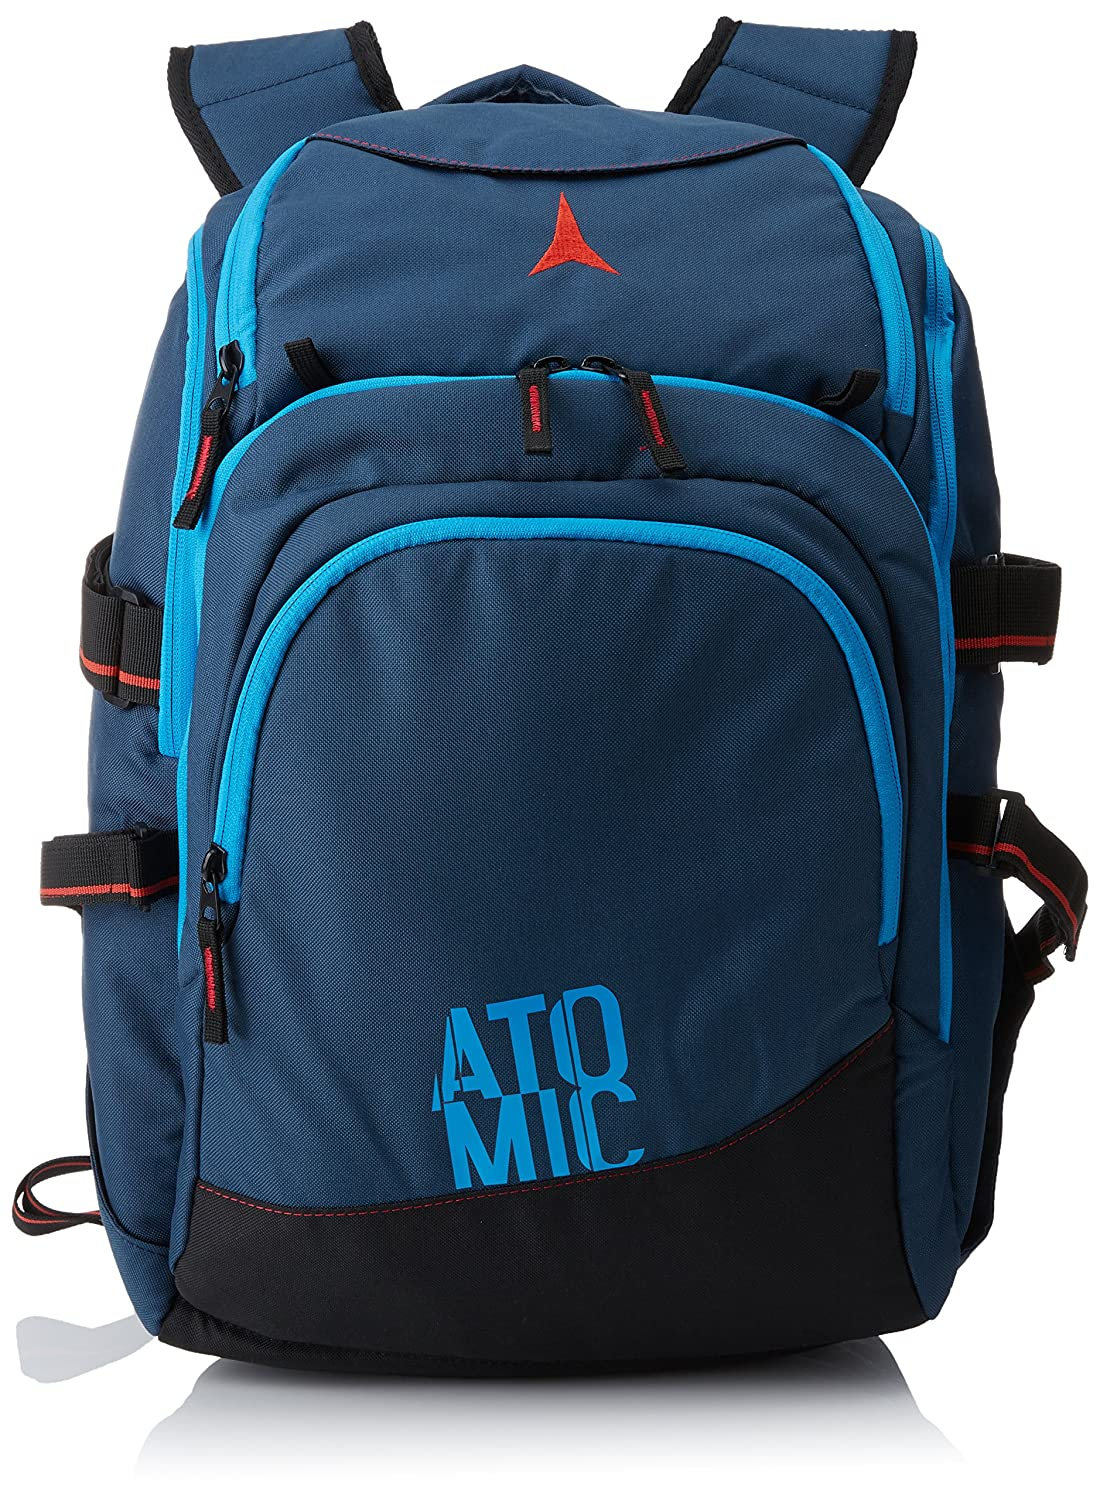 Atomic, All Mountain Backpack, AMT